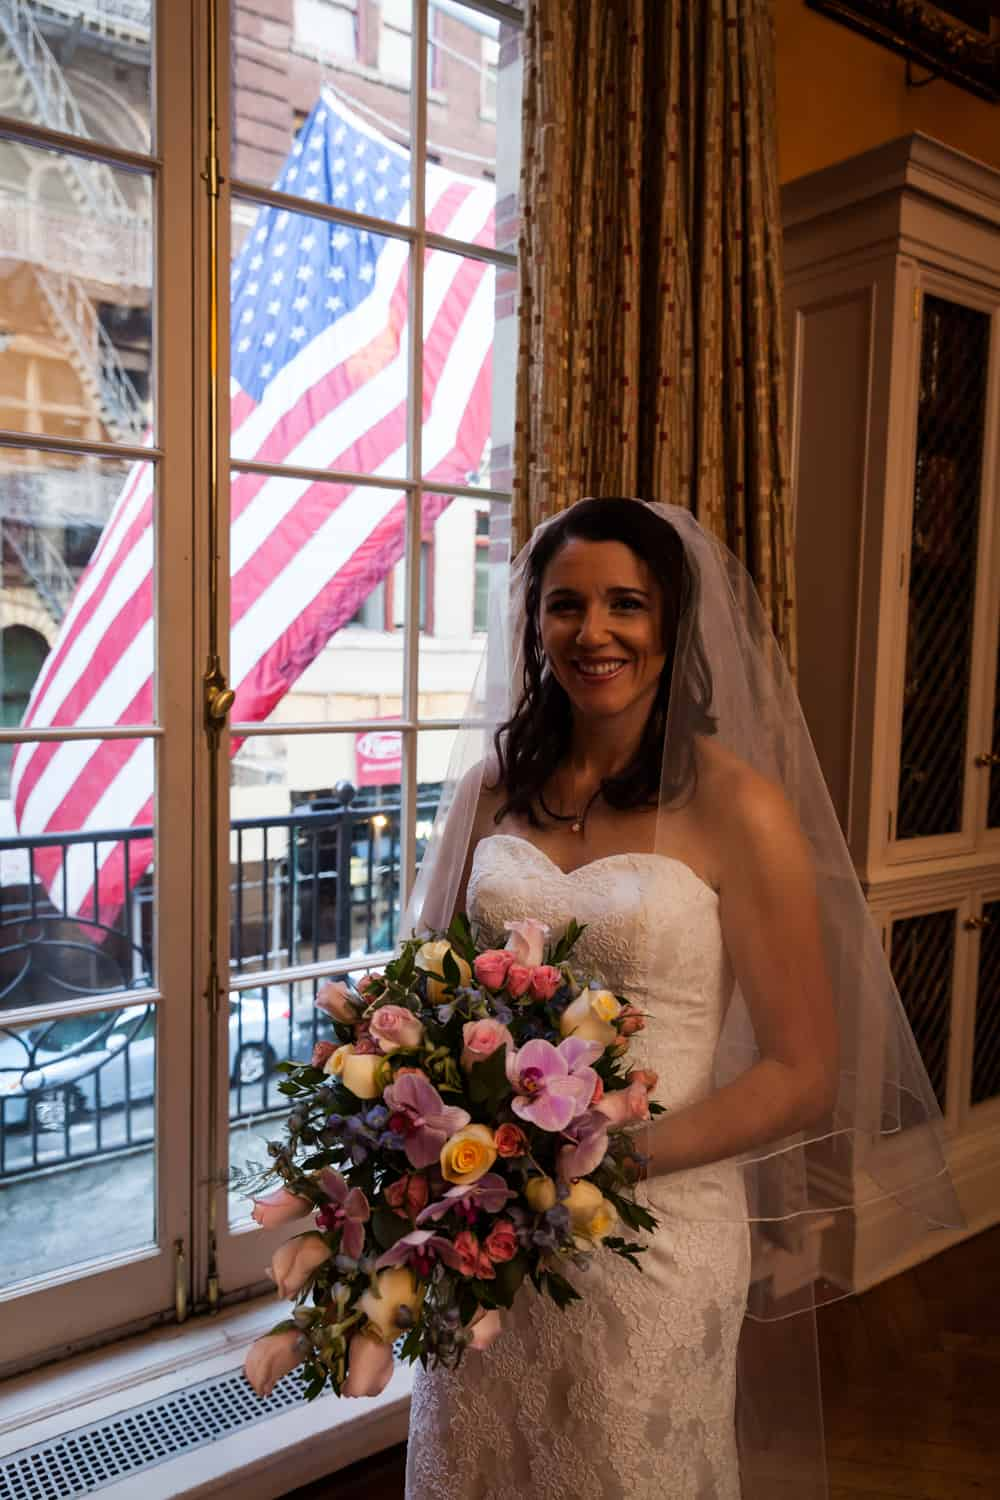 Bride holding bouquet by window for an article on the mysteries of photo editing